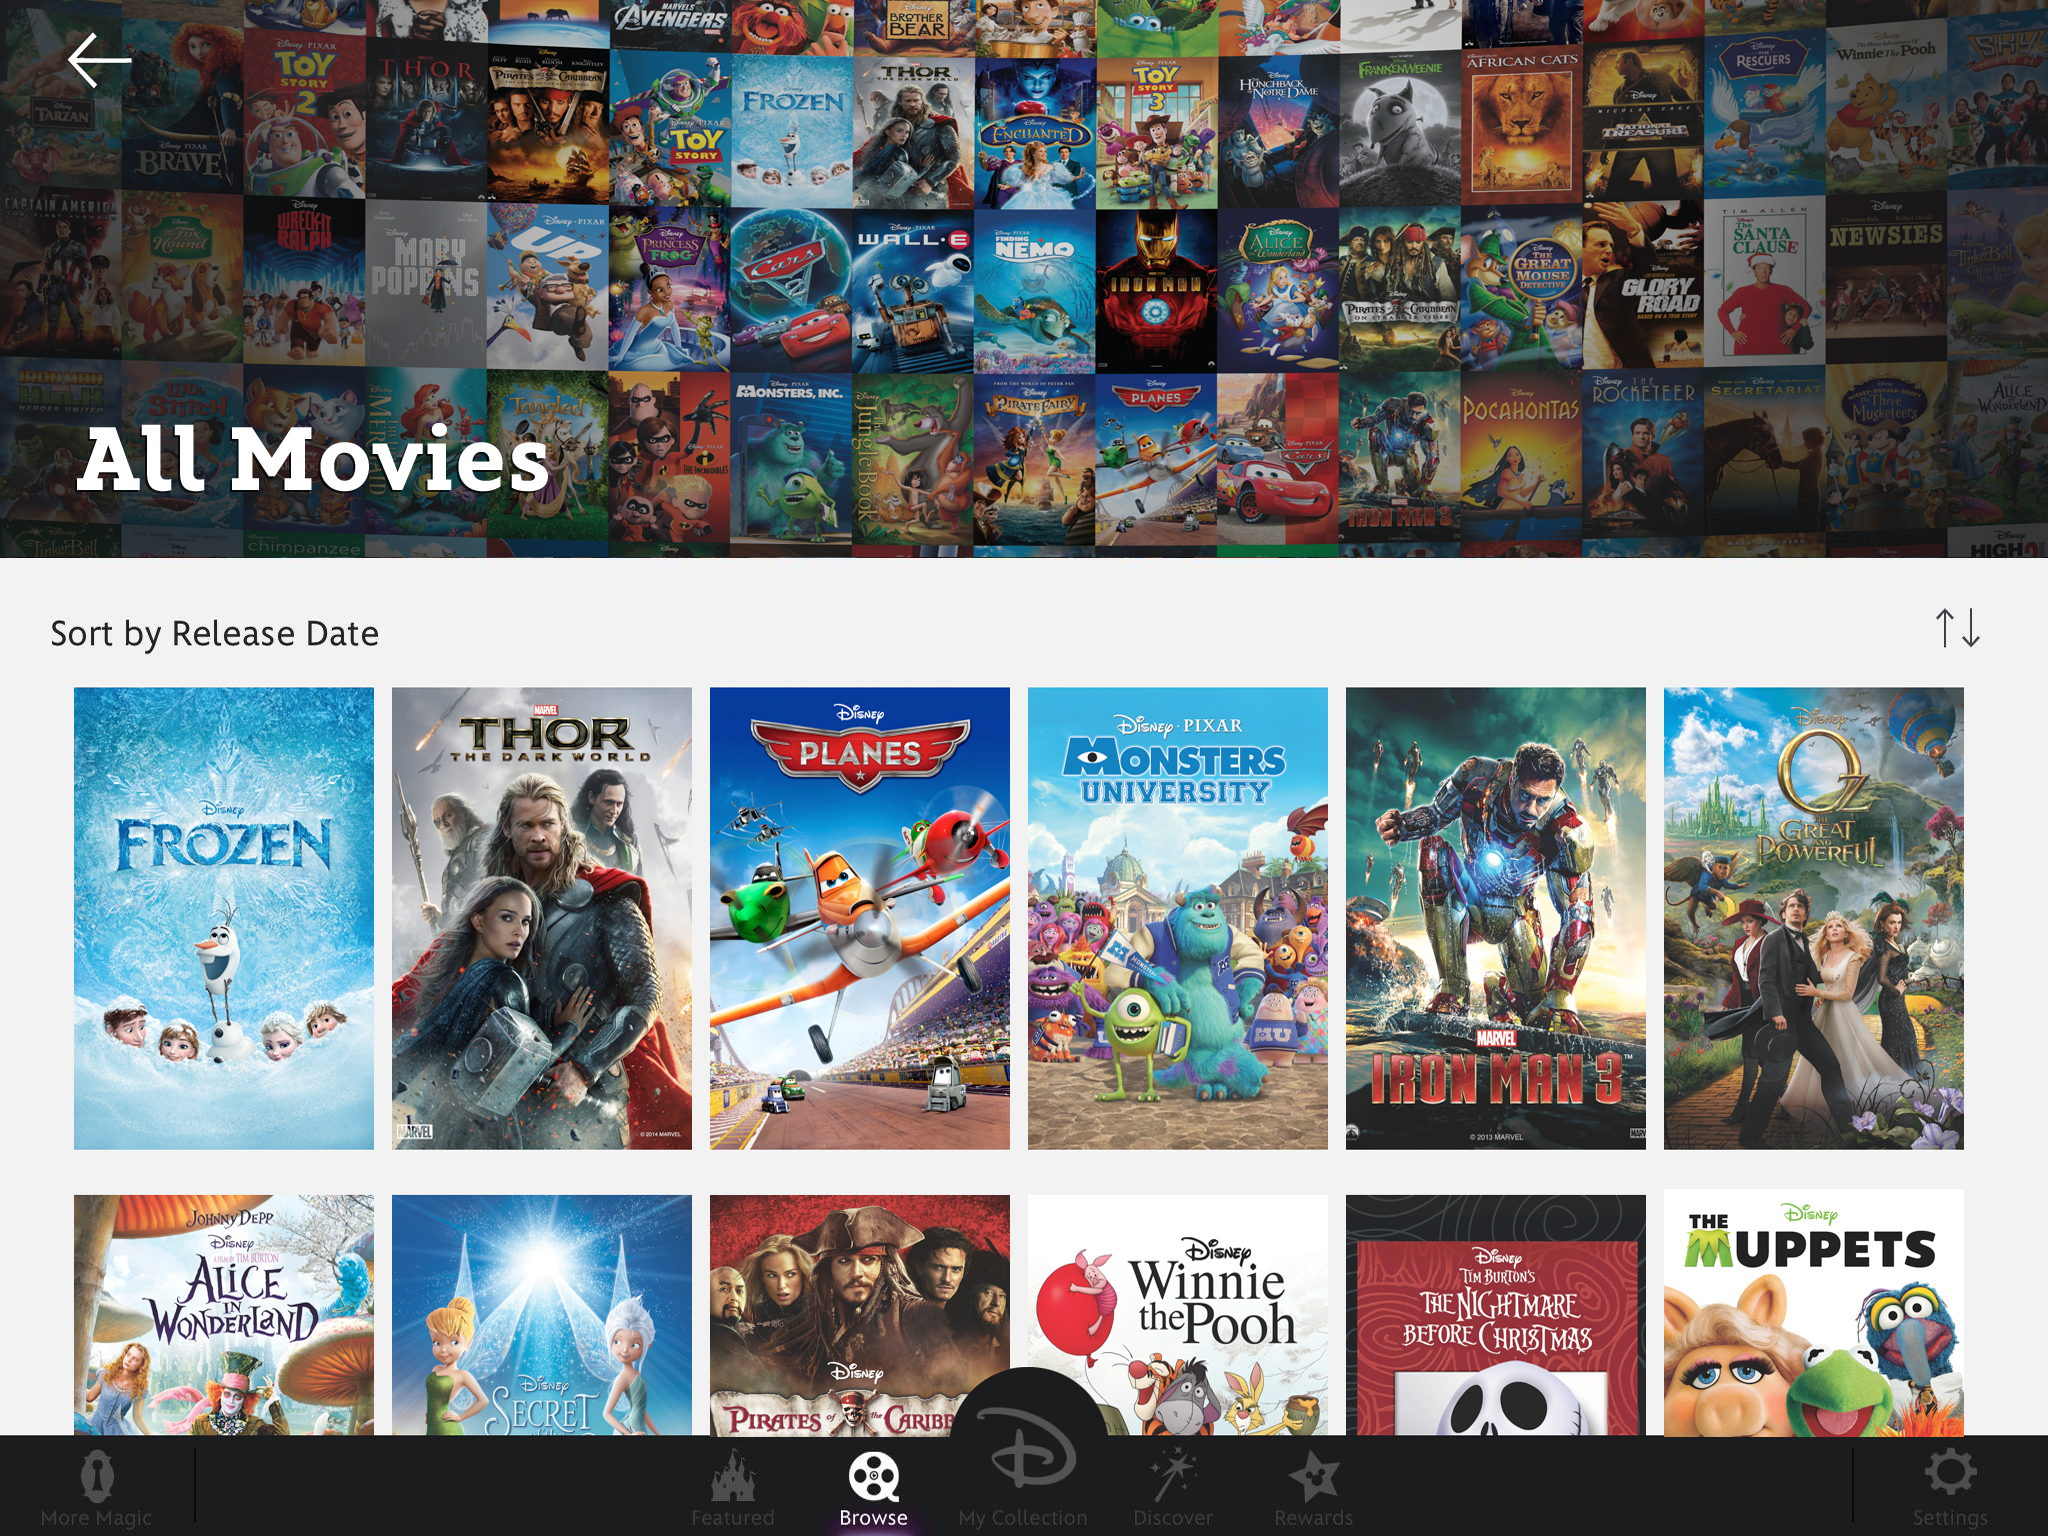 Disney Brings 400+ Films To iOS Devices With Disney Movies Anywhere App